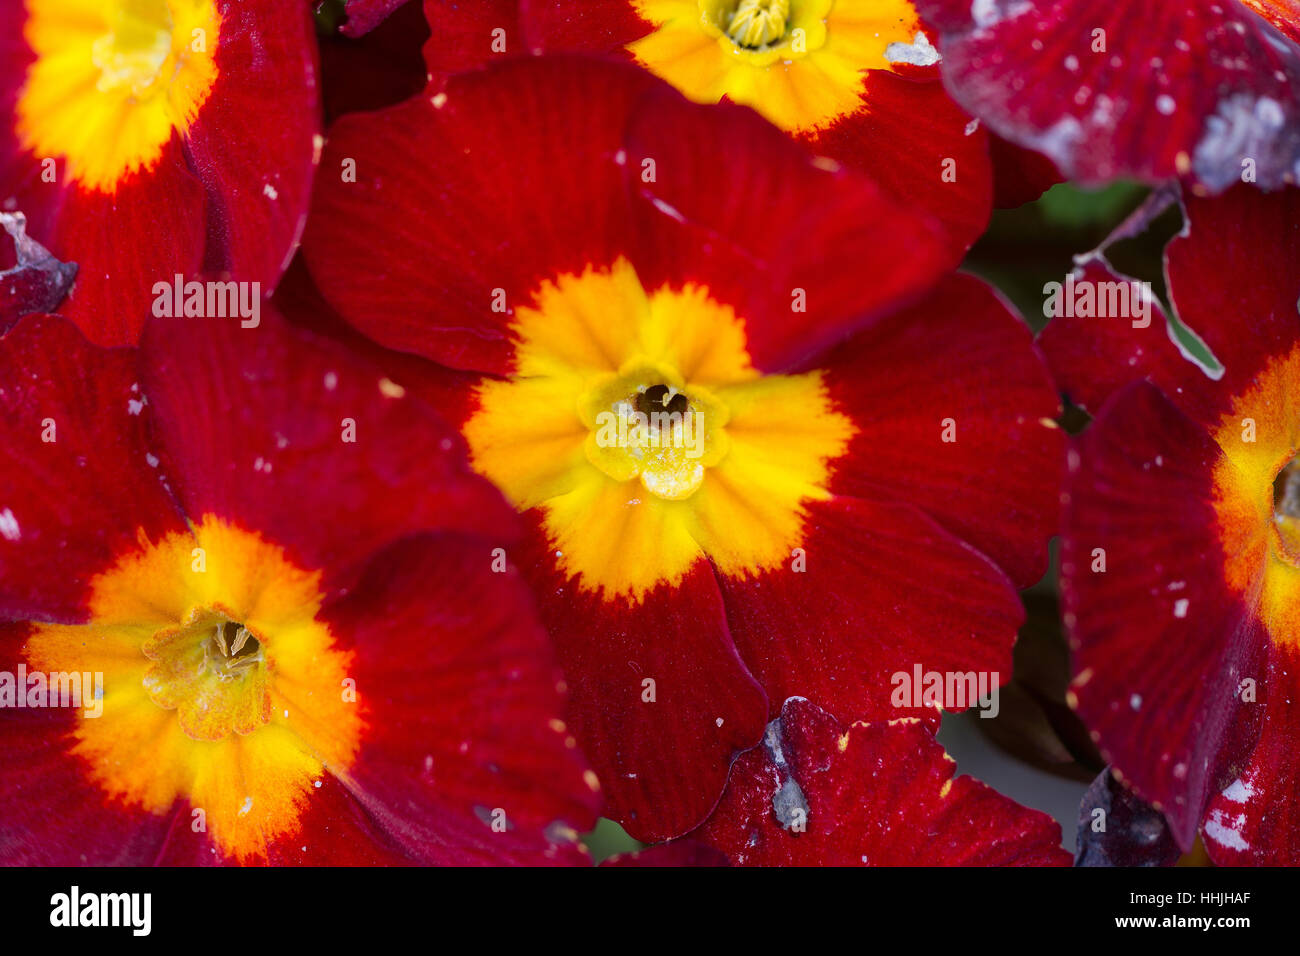 Red Flowers With Striped Velvet Textured Petals And Yellow Centre